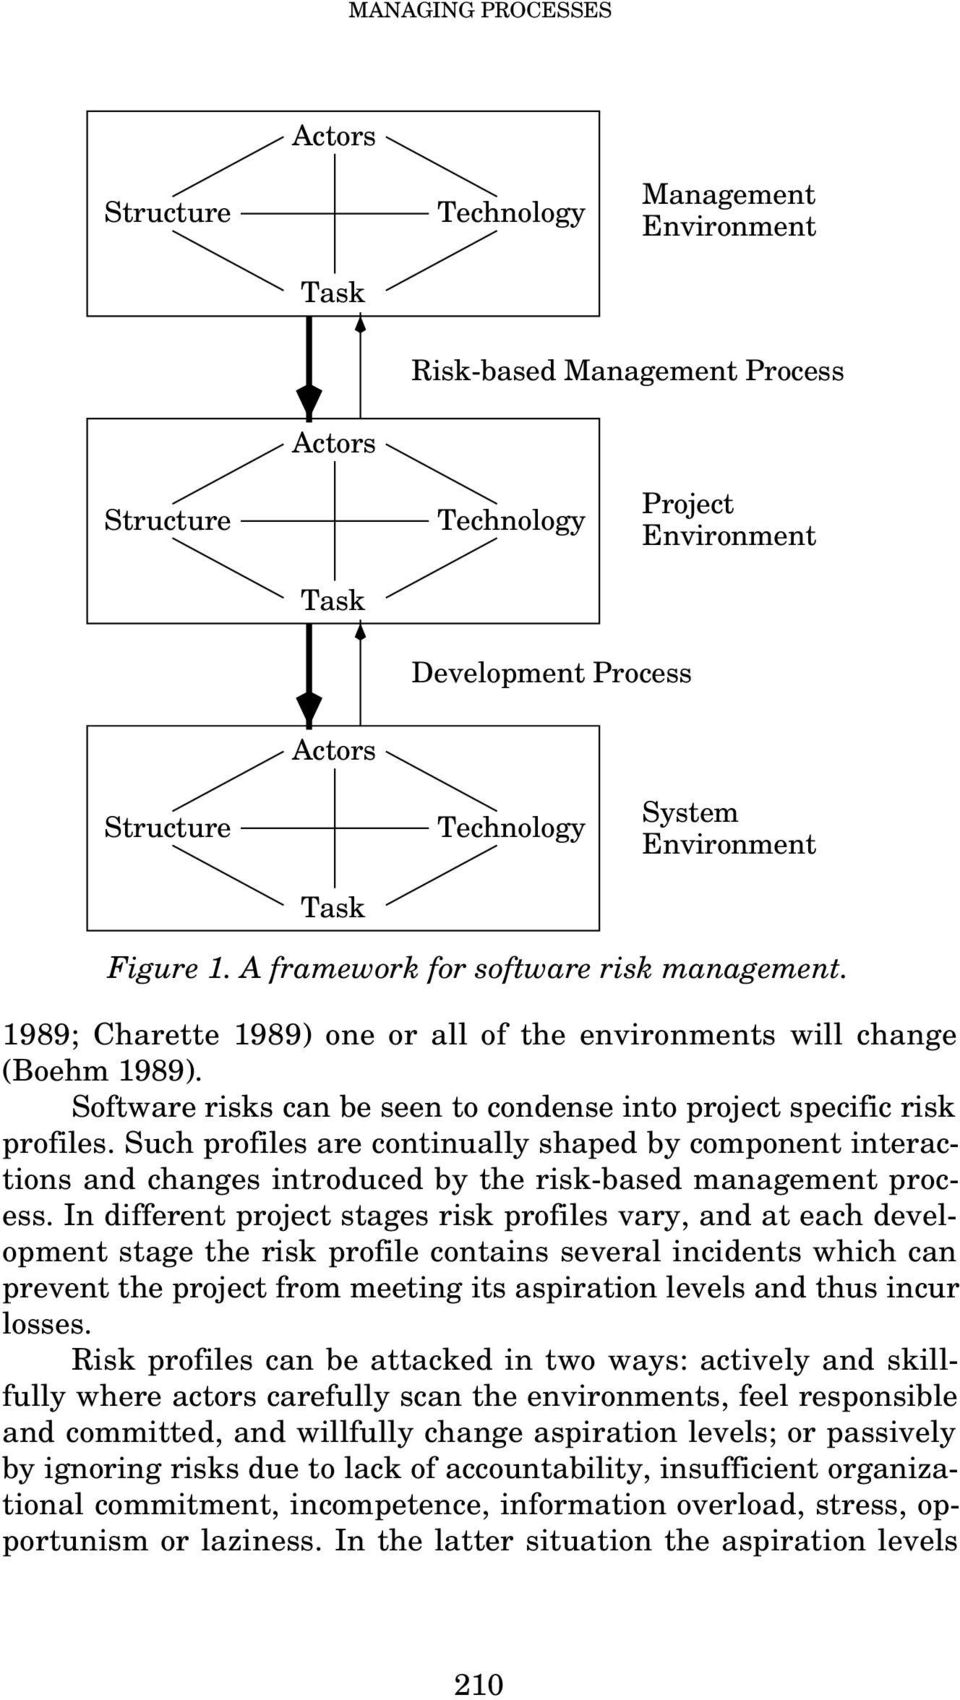 Software risks can be seen to condense into project specific risk profiles. Such profiles are continually shaped by component interactions and changes introduced by the risk-based management process.